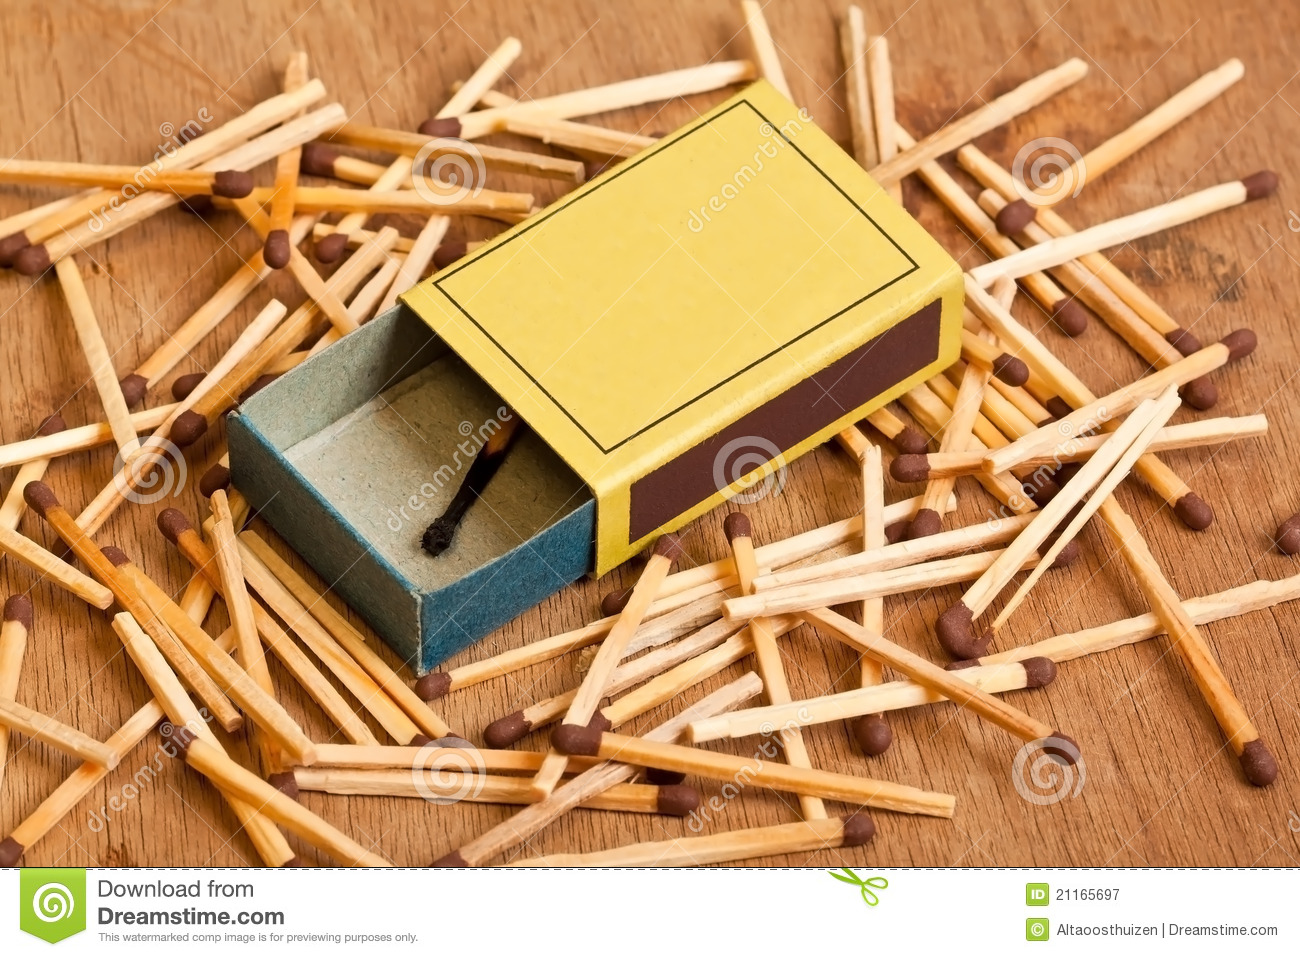 Matchbox lying on pile of matches